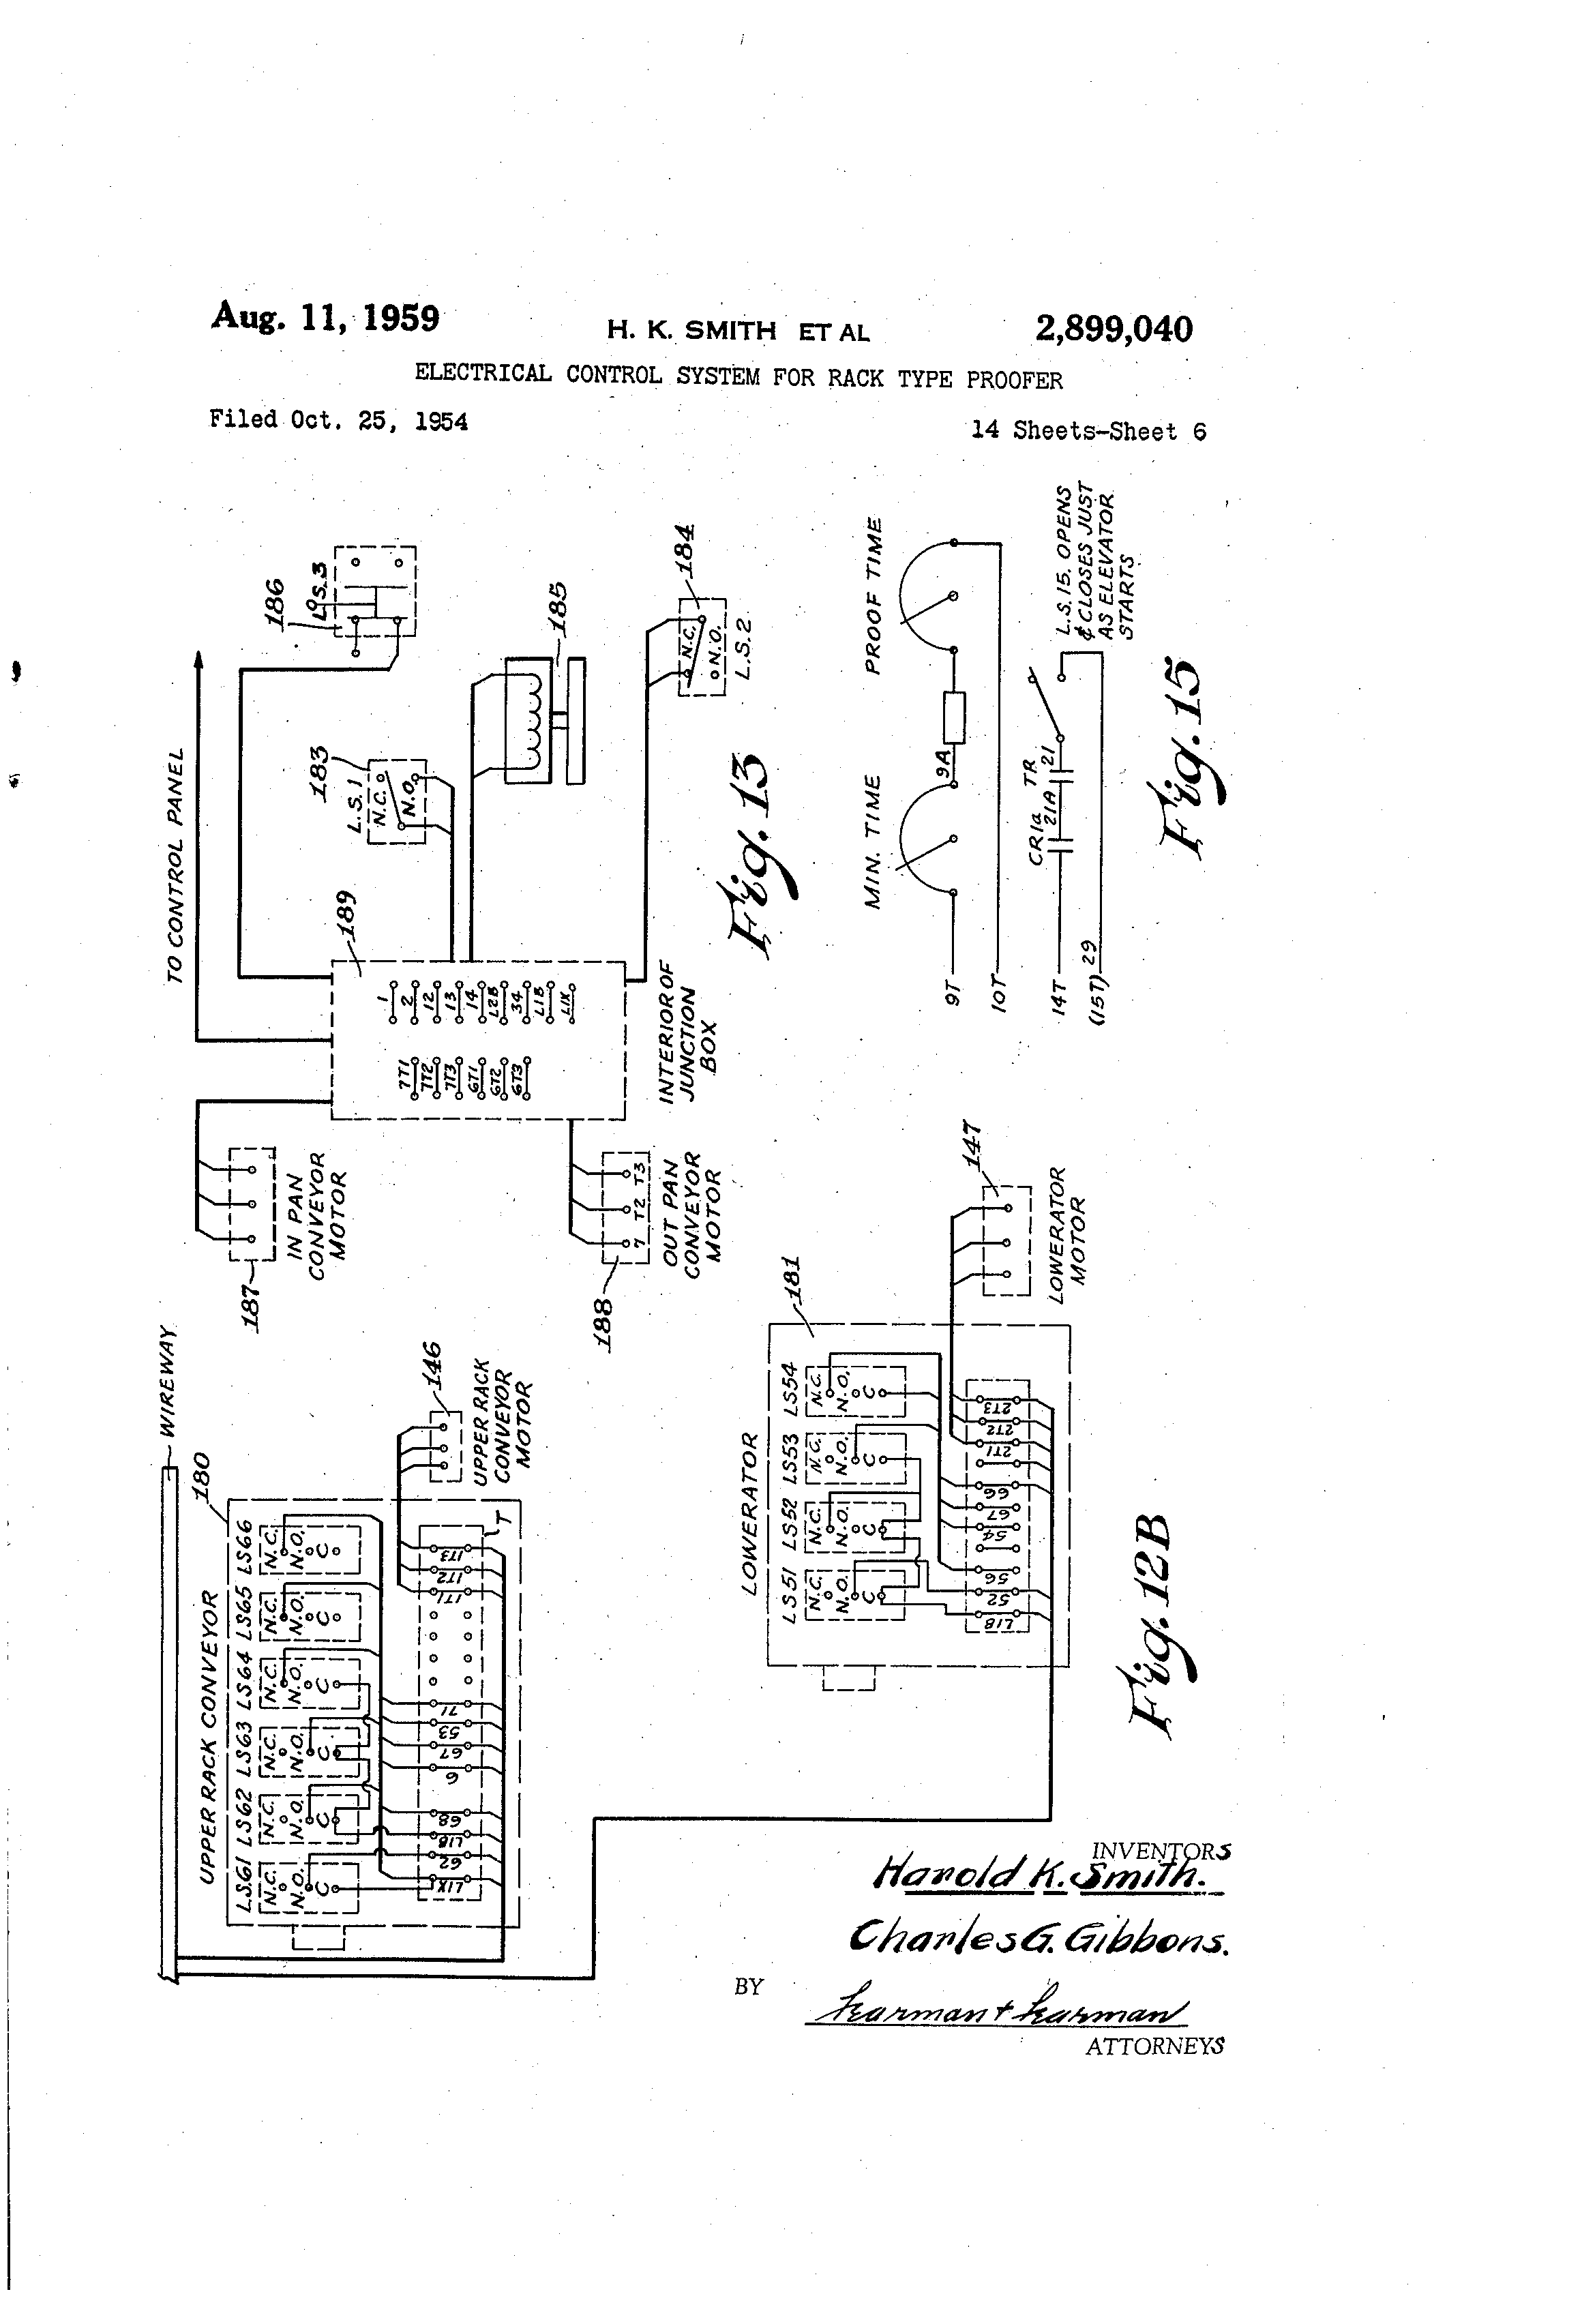 Us Motor 1874 Wiring - Wiring Diagram Name on electric motor wiring diagrams, motor overload wiring diagrams, capacitor start motor diagrams, single phase capacitor motor diagrams, motor run capacitor wiring, induction motor wiring diagrams, motor starter wiring diagrams, baldor ac motor diagrams, single phase motor wiring diagrams, dayton capacitor start wiring diagrams, motor heater wiring diagrams, wound rotor motor wiring diagrams,